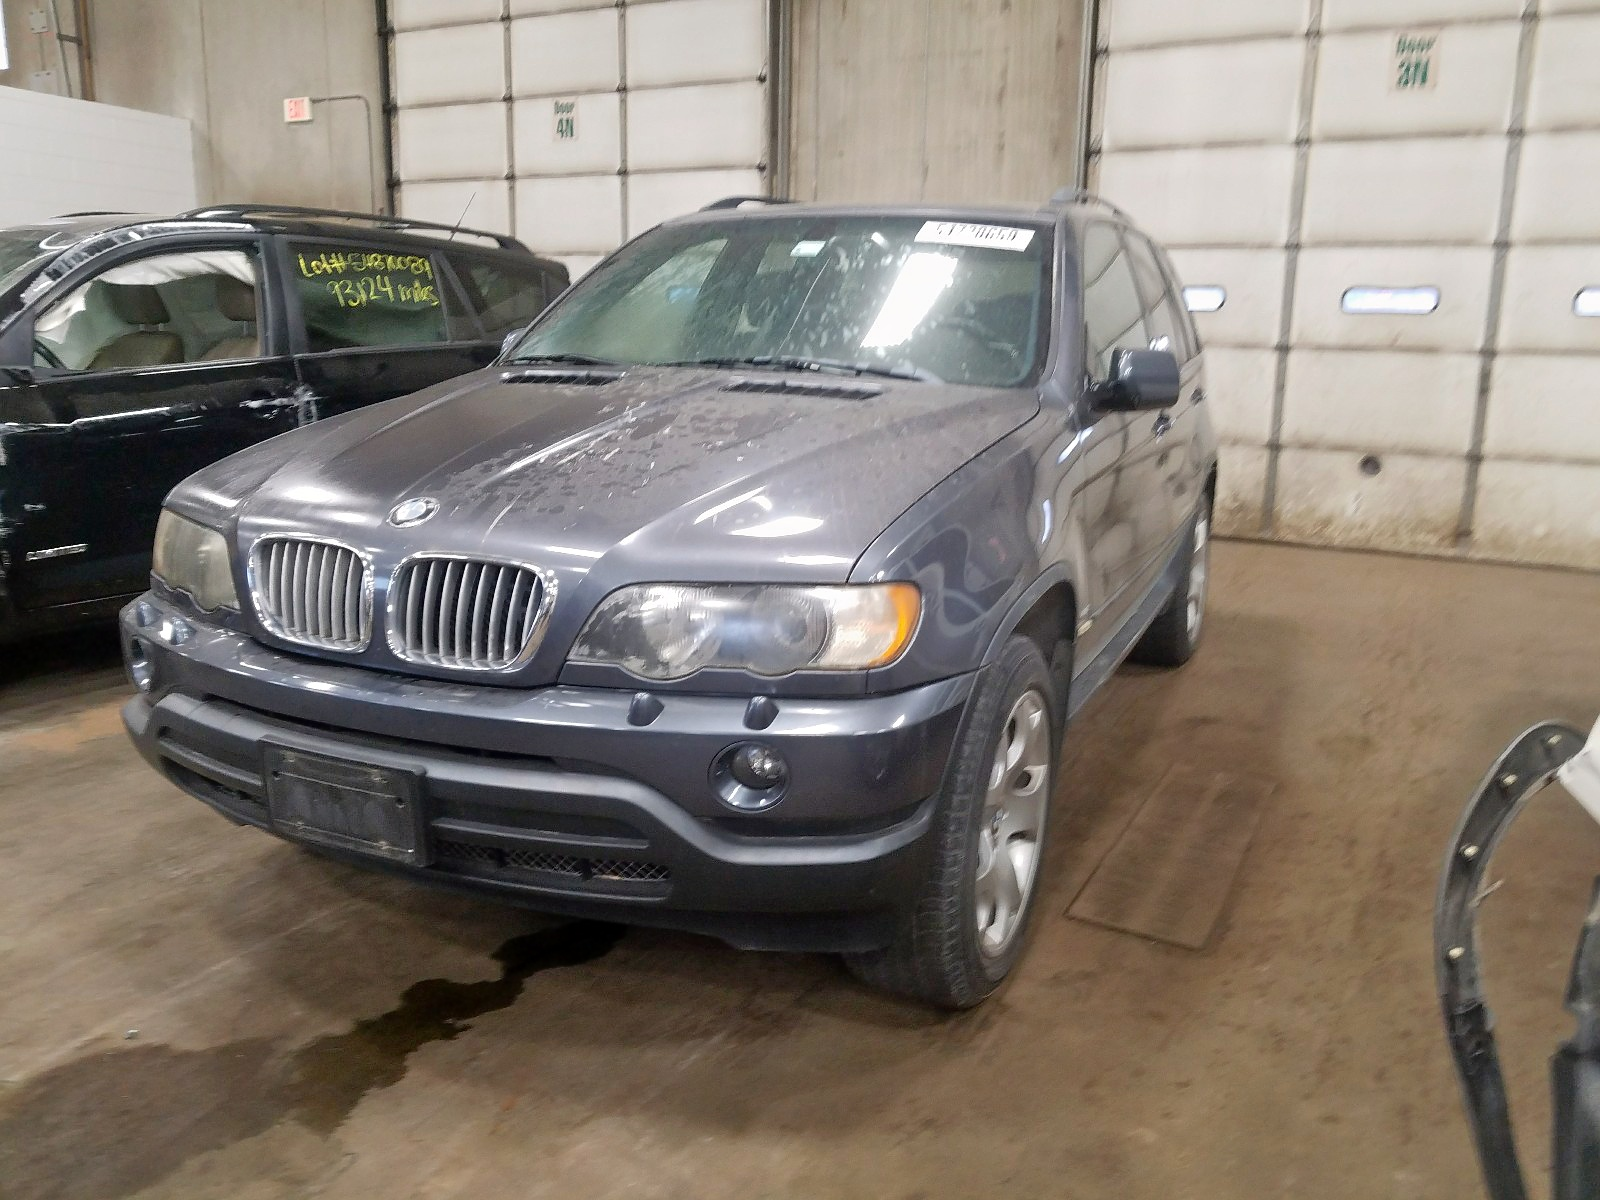 2003 Bmw X5 4.4I 4.4L Right View